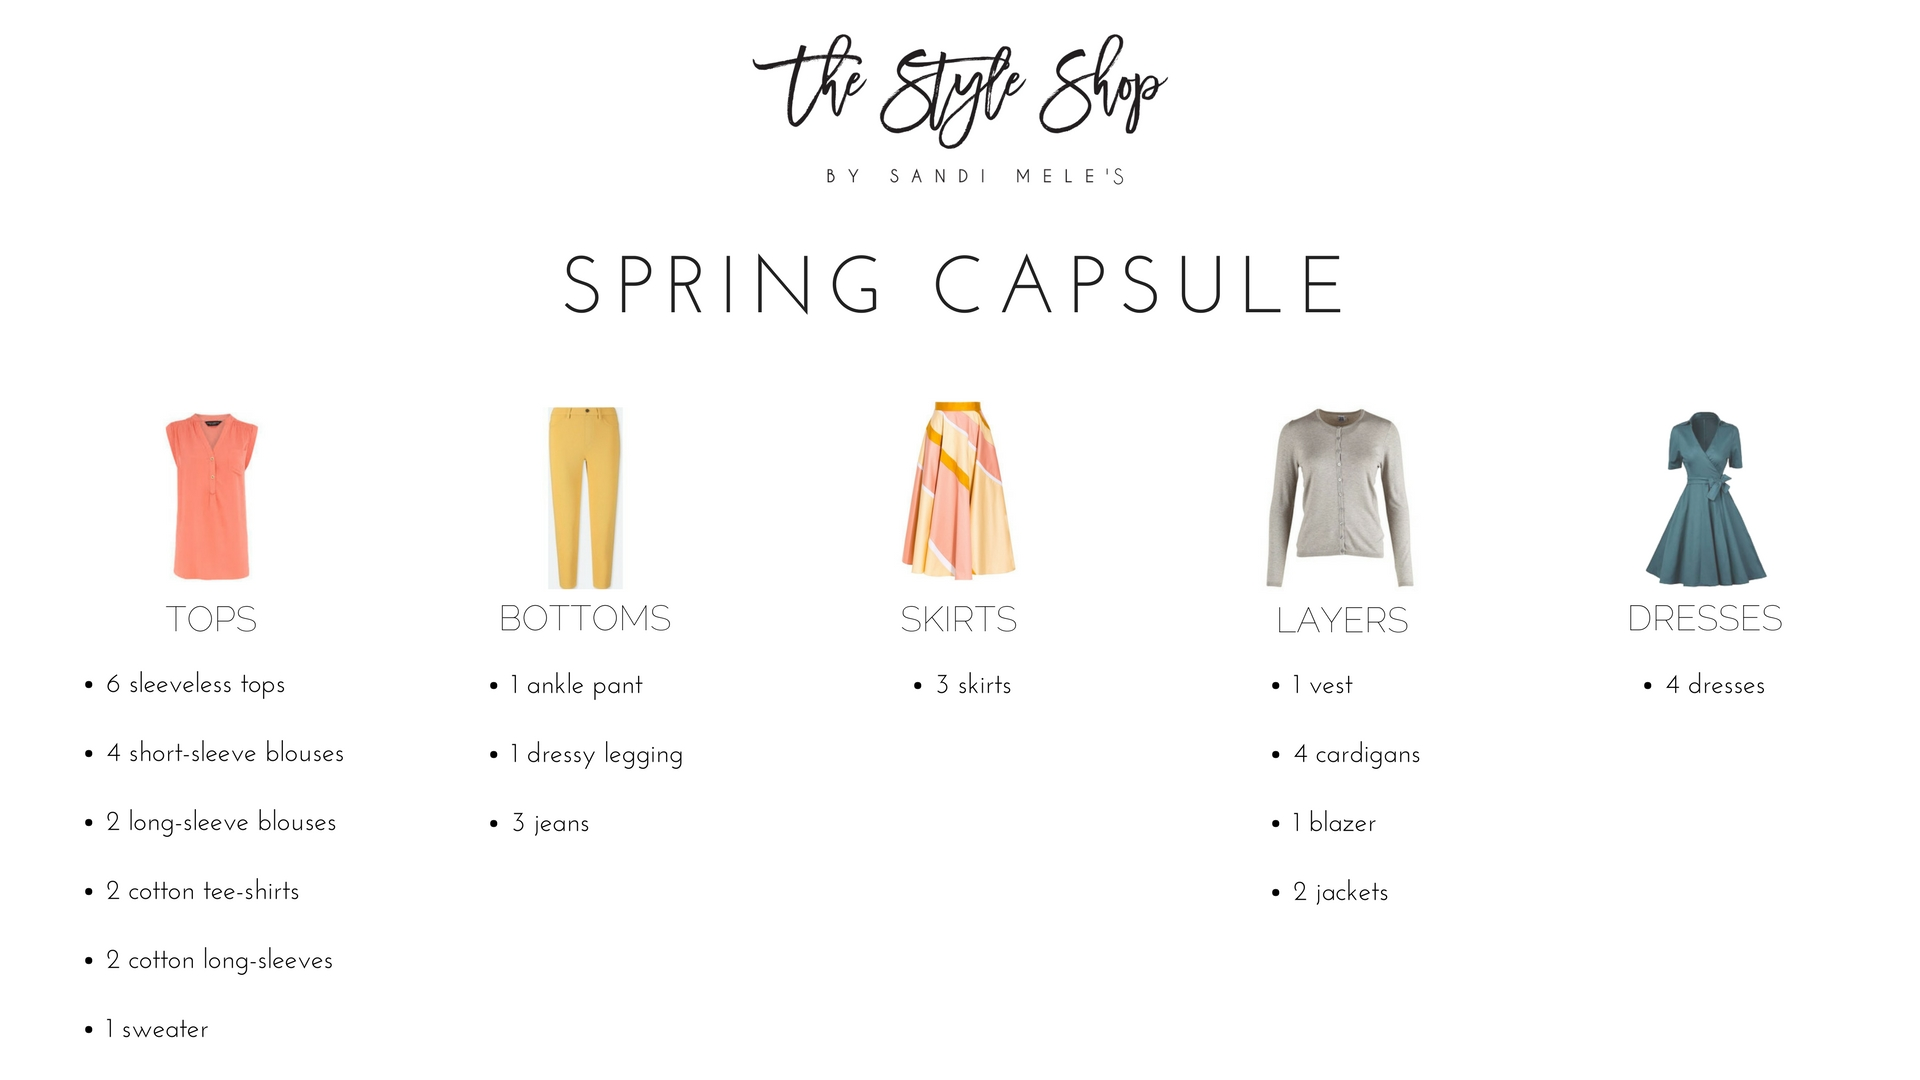 The Style Shop by Sandi Mele's Spring Capsule